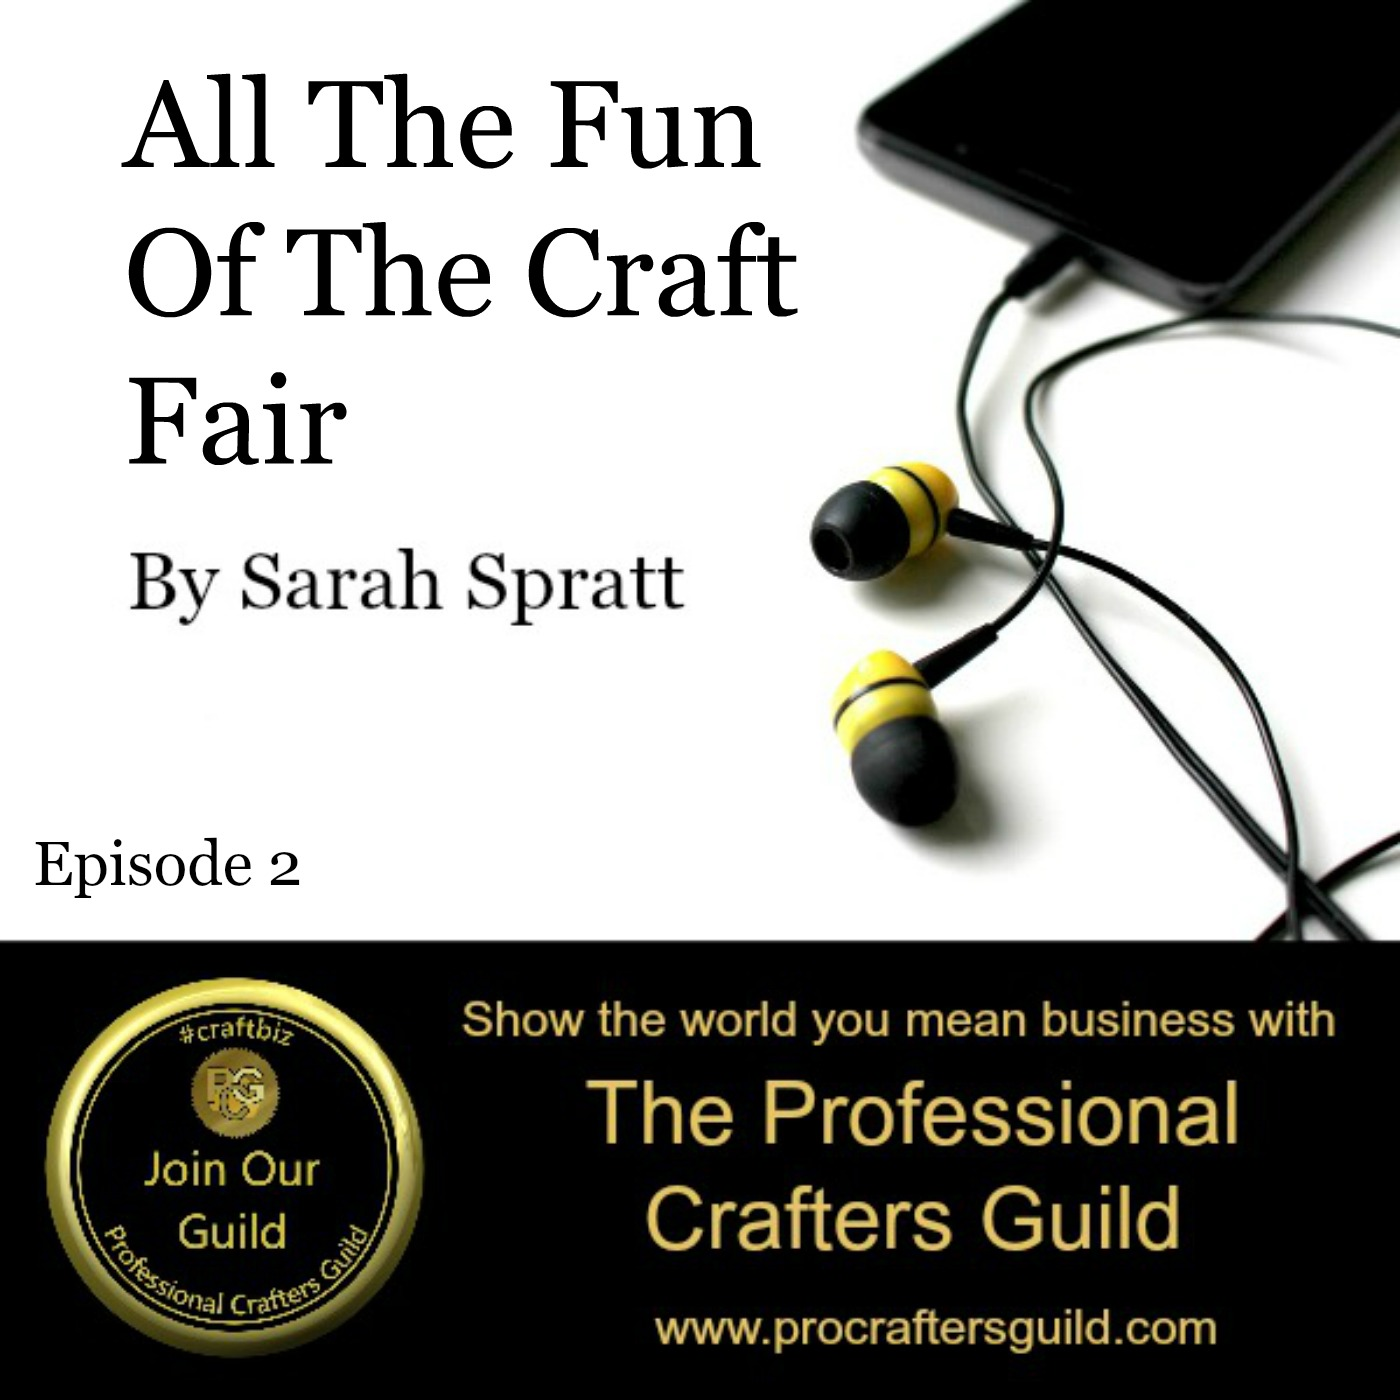 The Professional Crafters Guild